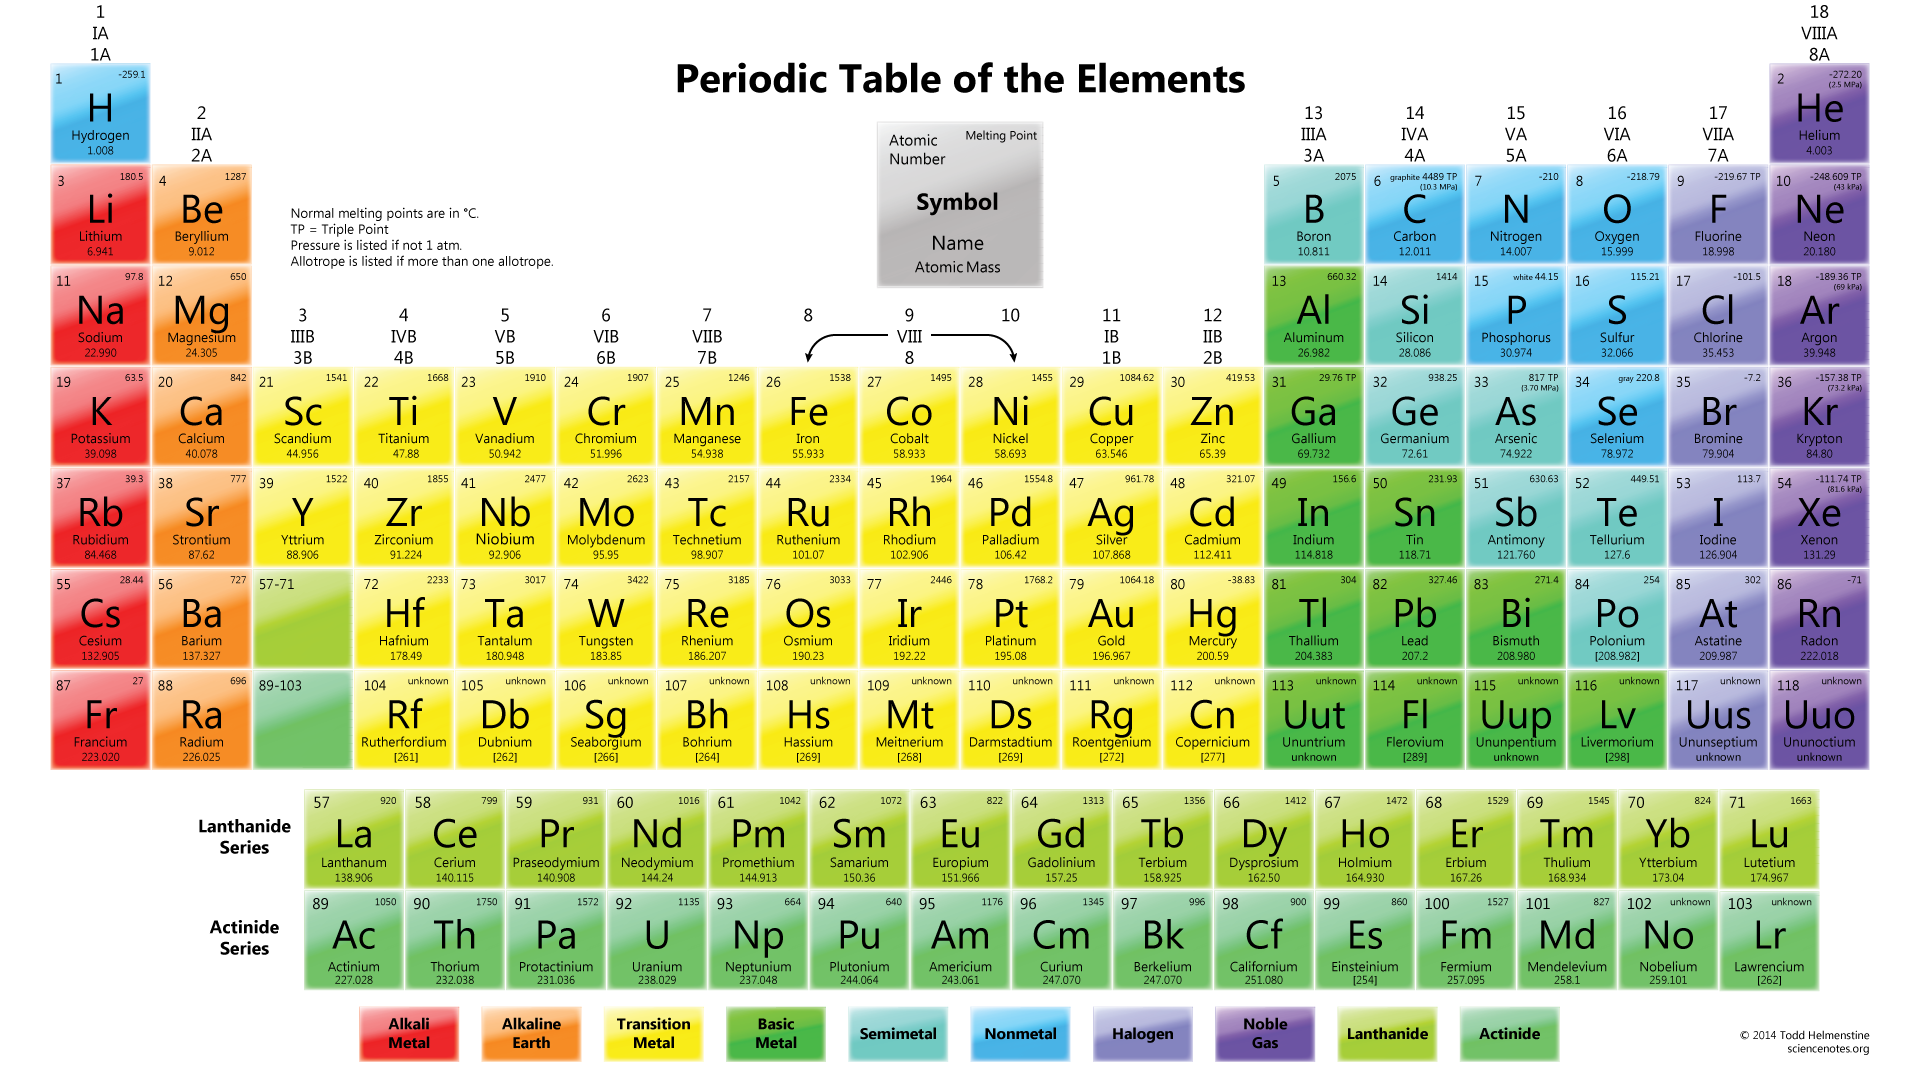 30 printable periodic tables for chemistry science notes and color periodic table wallpaper with element melting points urtaz Image collections